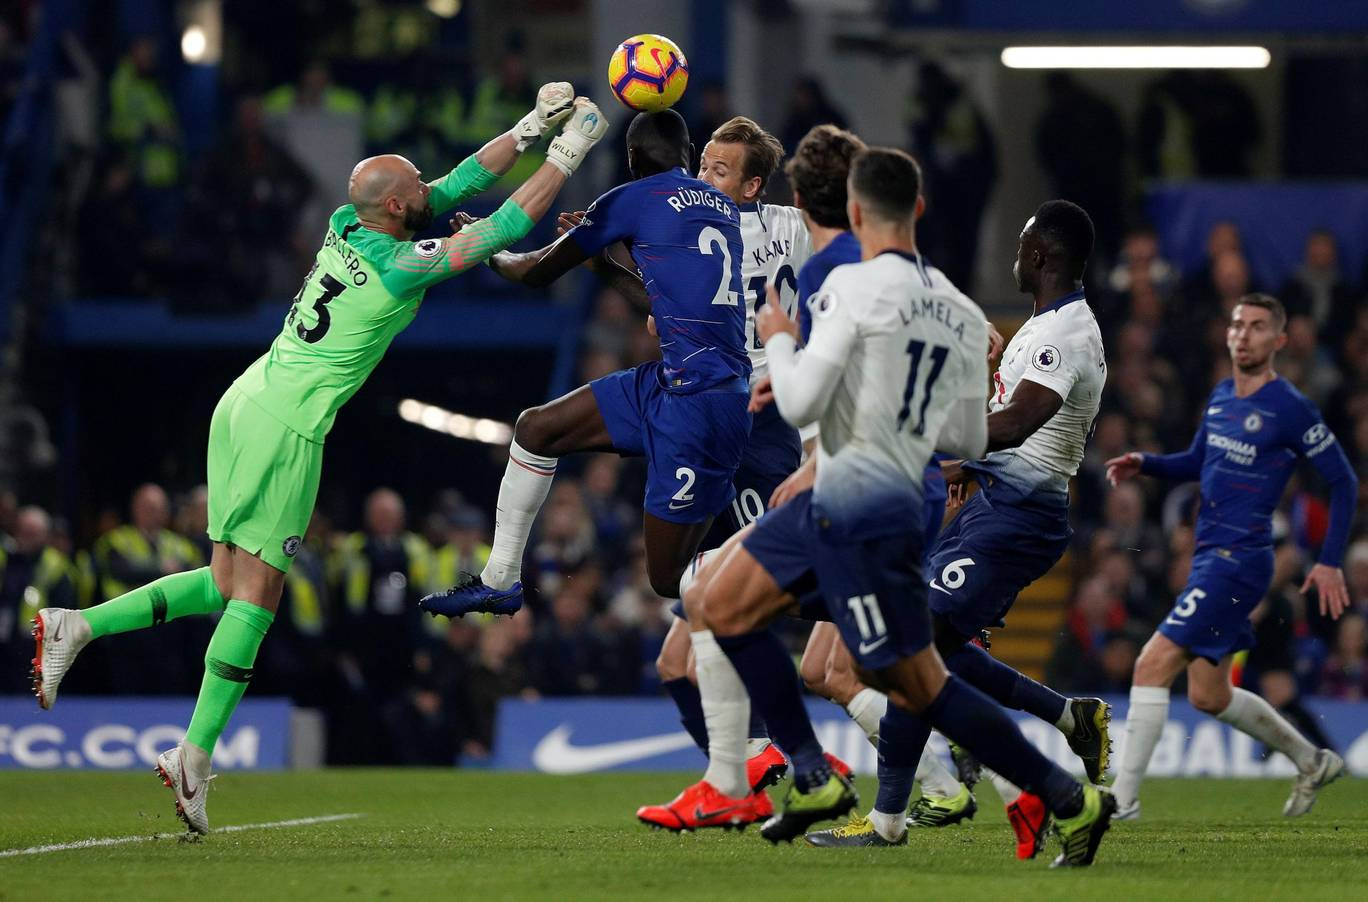 A rare moment of action for Caballero against Spurs.